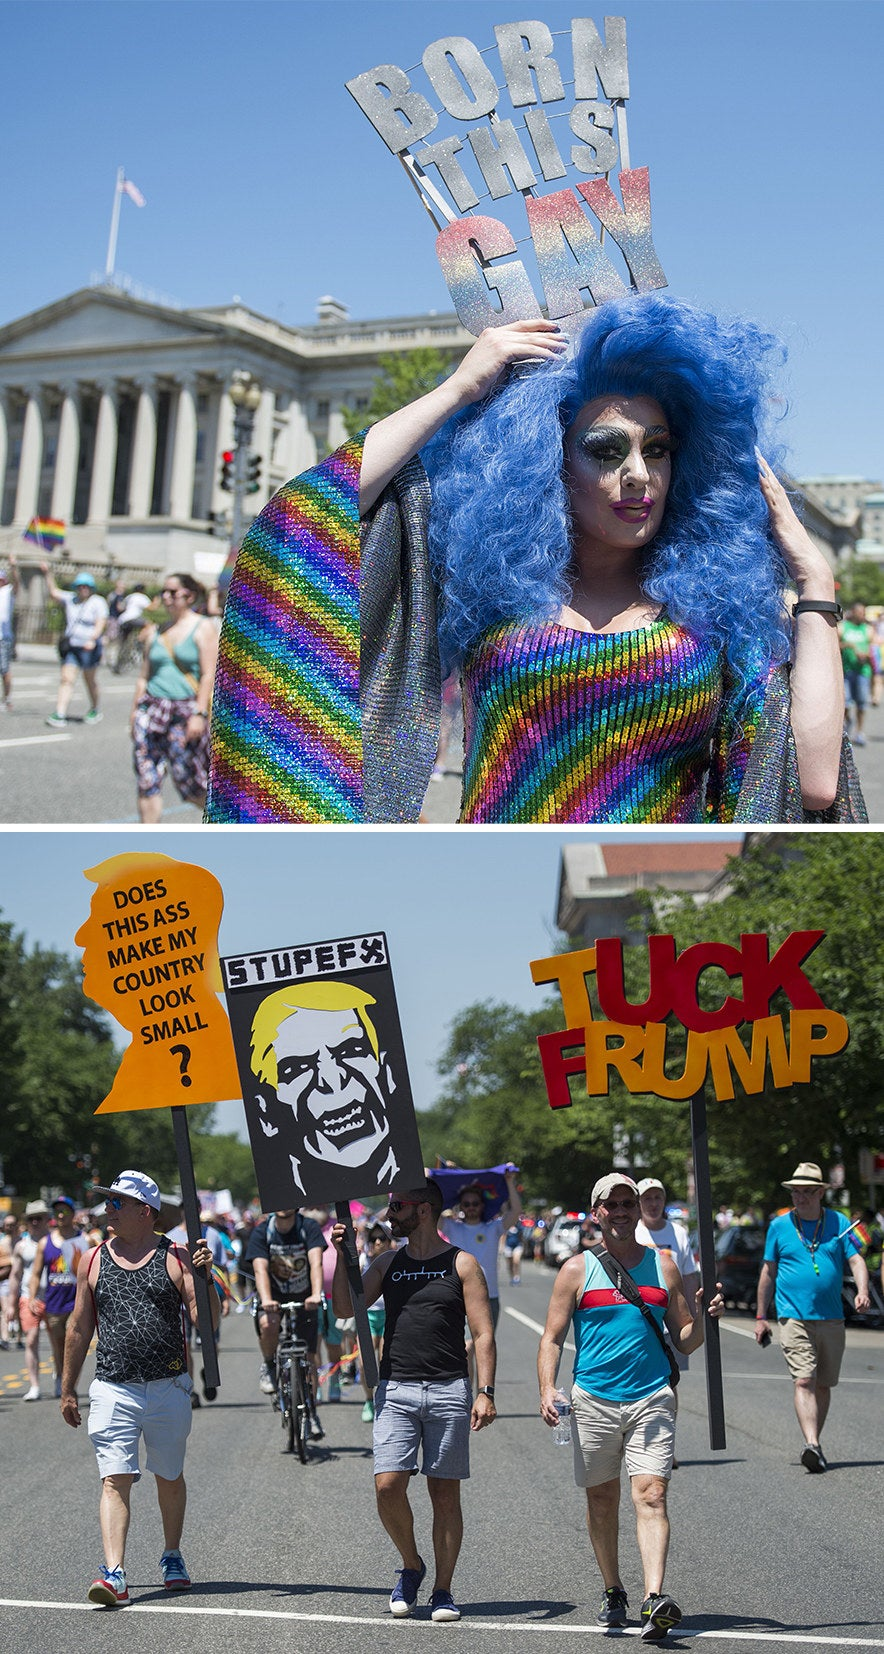 LGBT people and supporters take part in the Equality March for Unity in Washington, DC, on June 11, 2017.